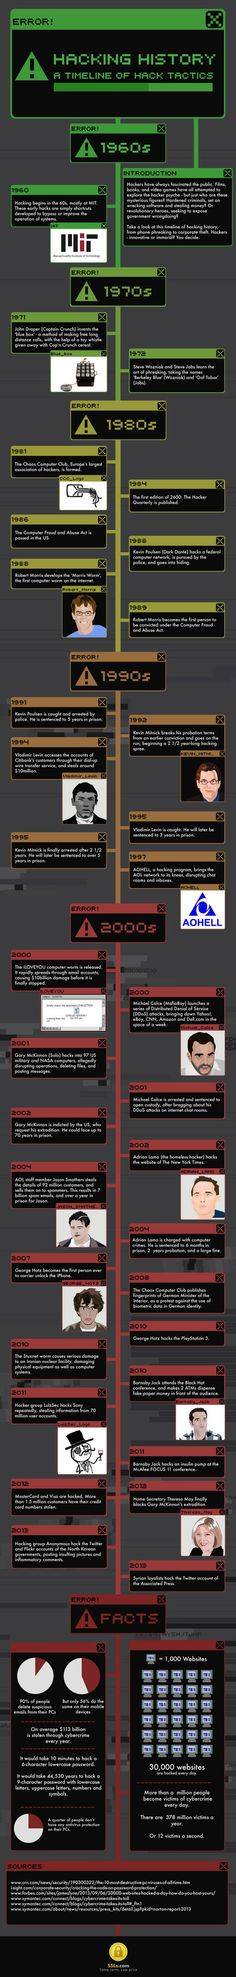 """Hacking History Infographic - Best Infographics   """"Tweet Tweet We hear a lot about hackers these days. But they have been around for a very long time. The good folks at SSLs.com have put together an infographic that covers some of the most important moments in computer hacking history:"""" [...]"""